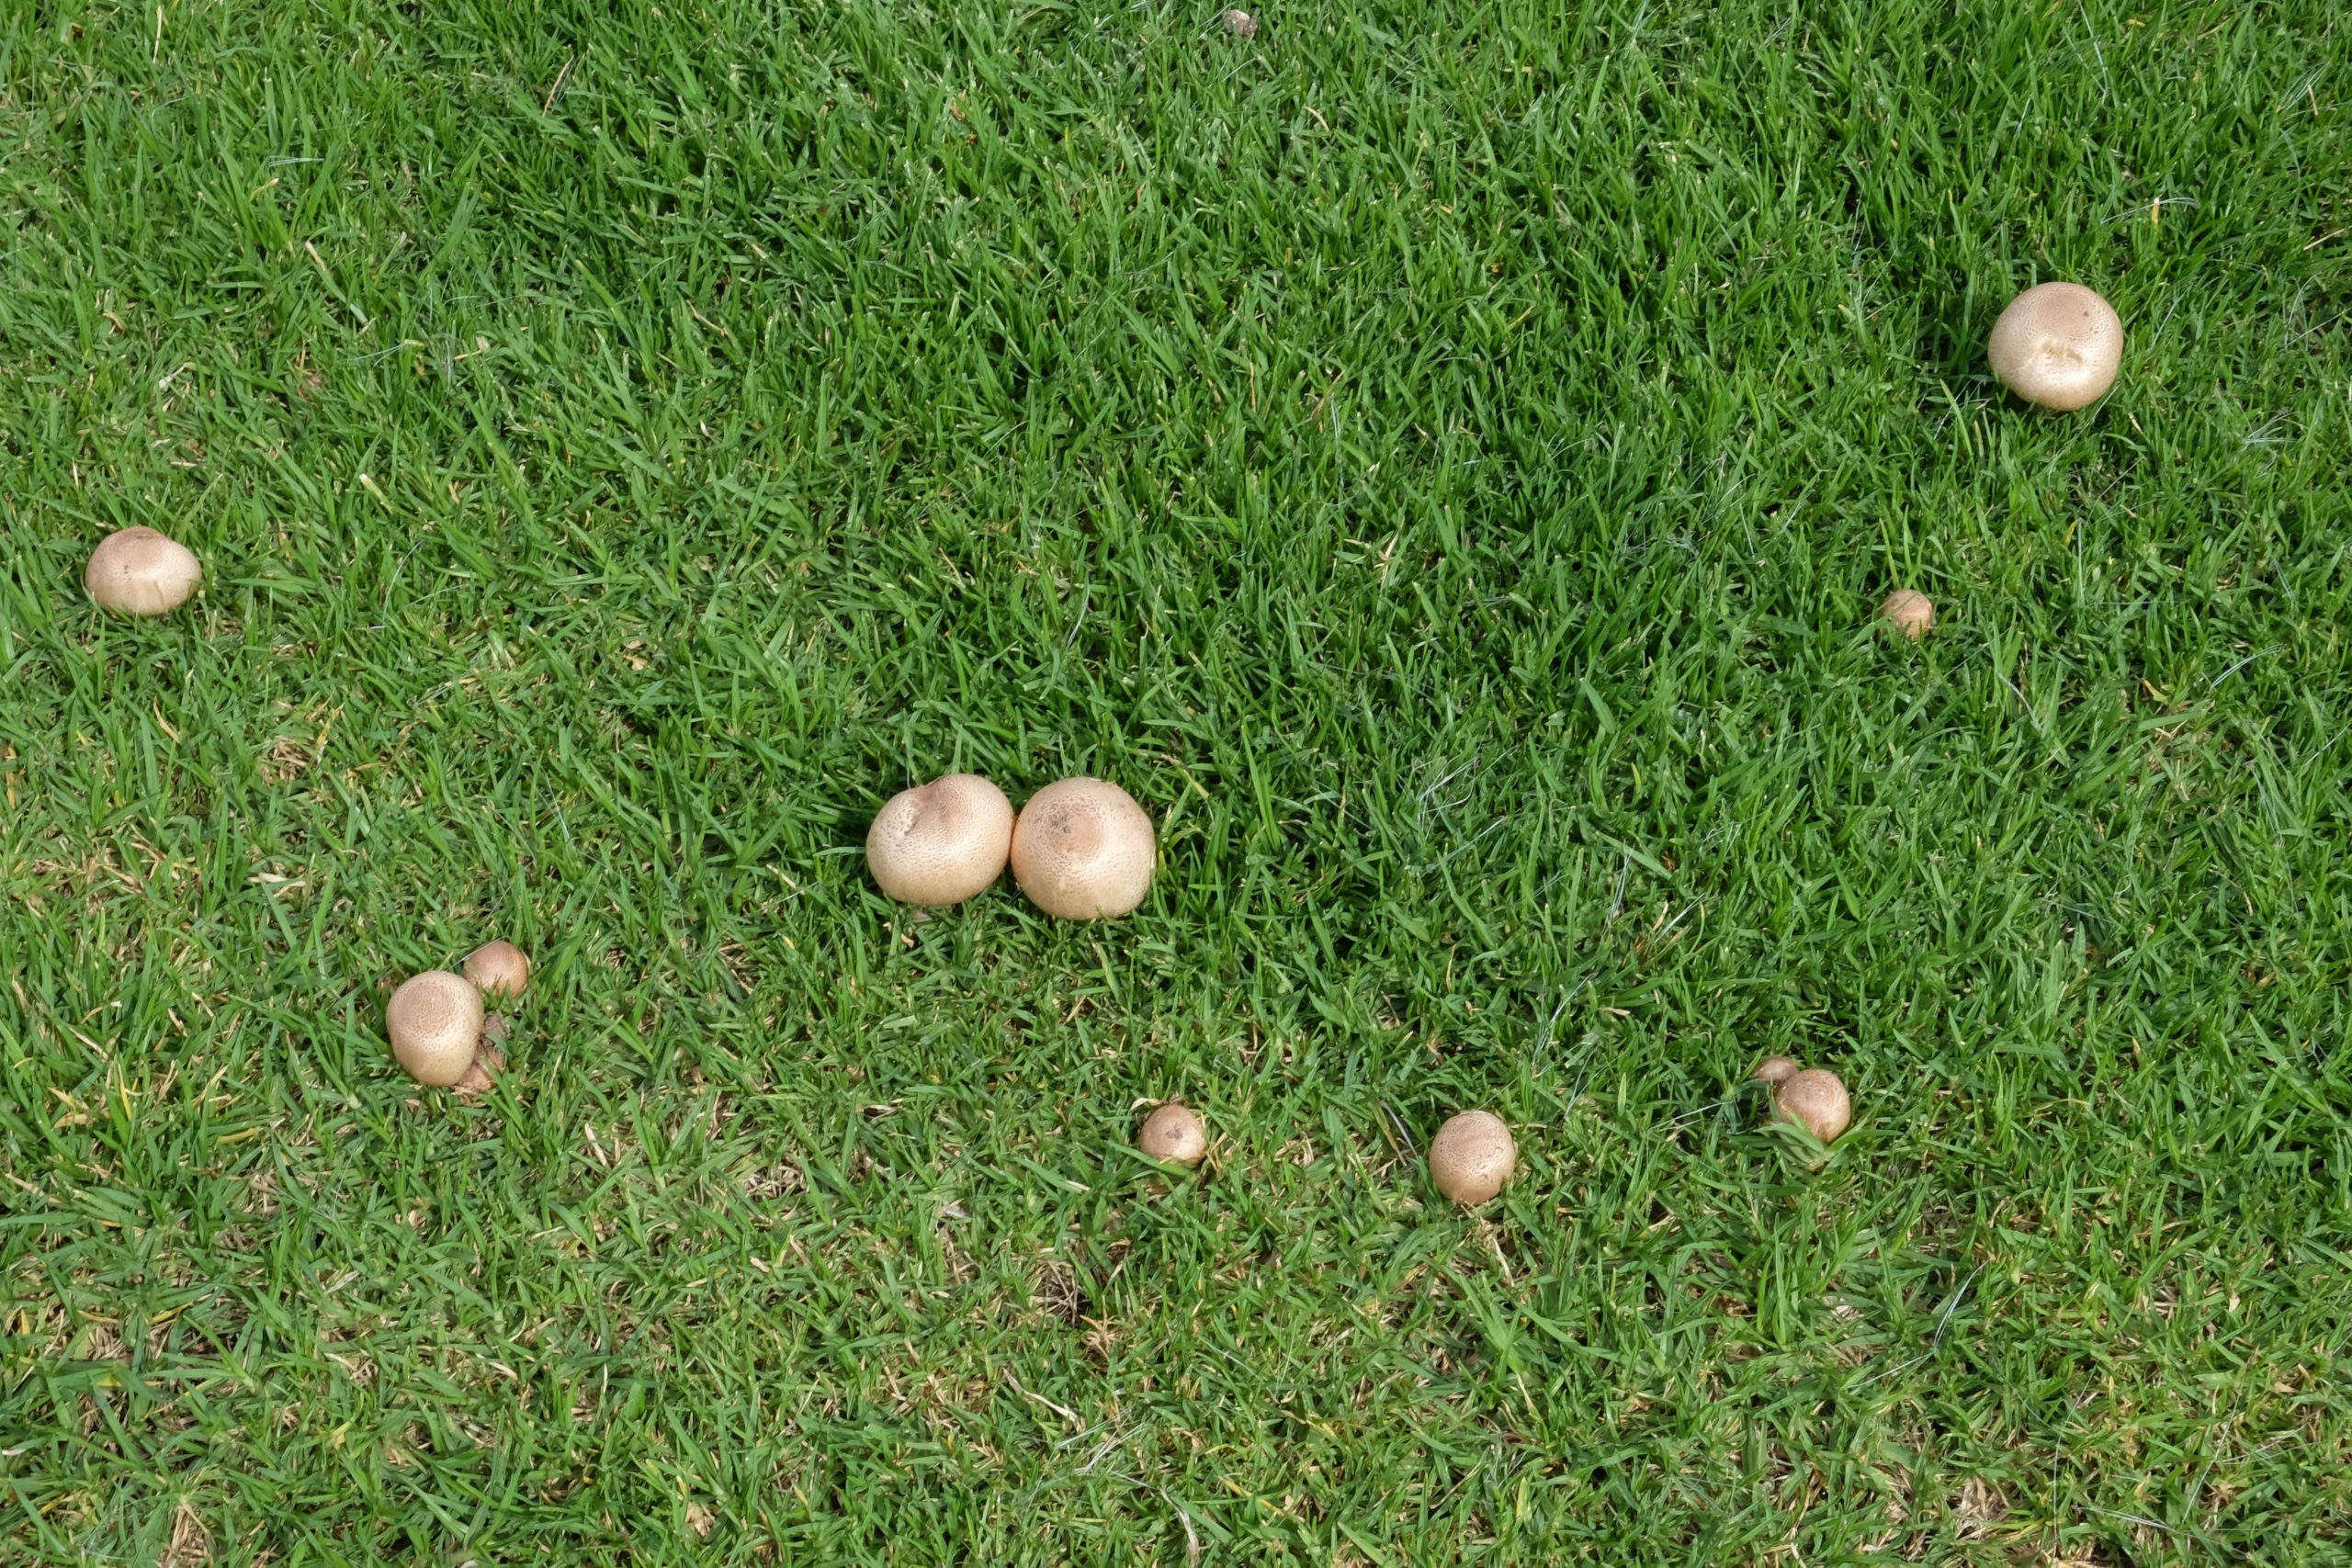 mushrooms on lawn from above